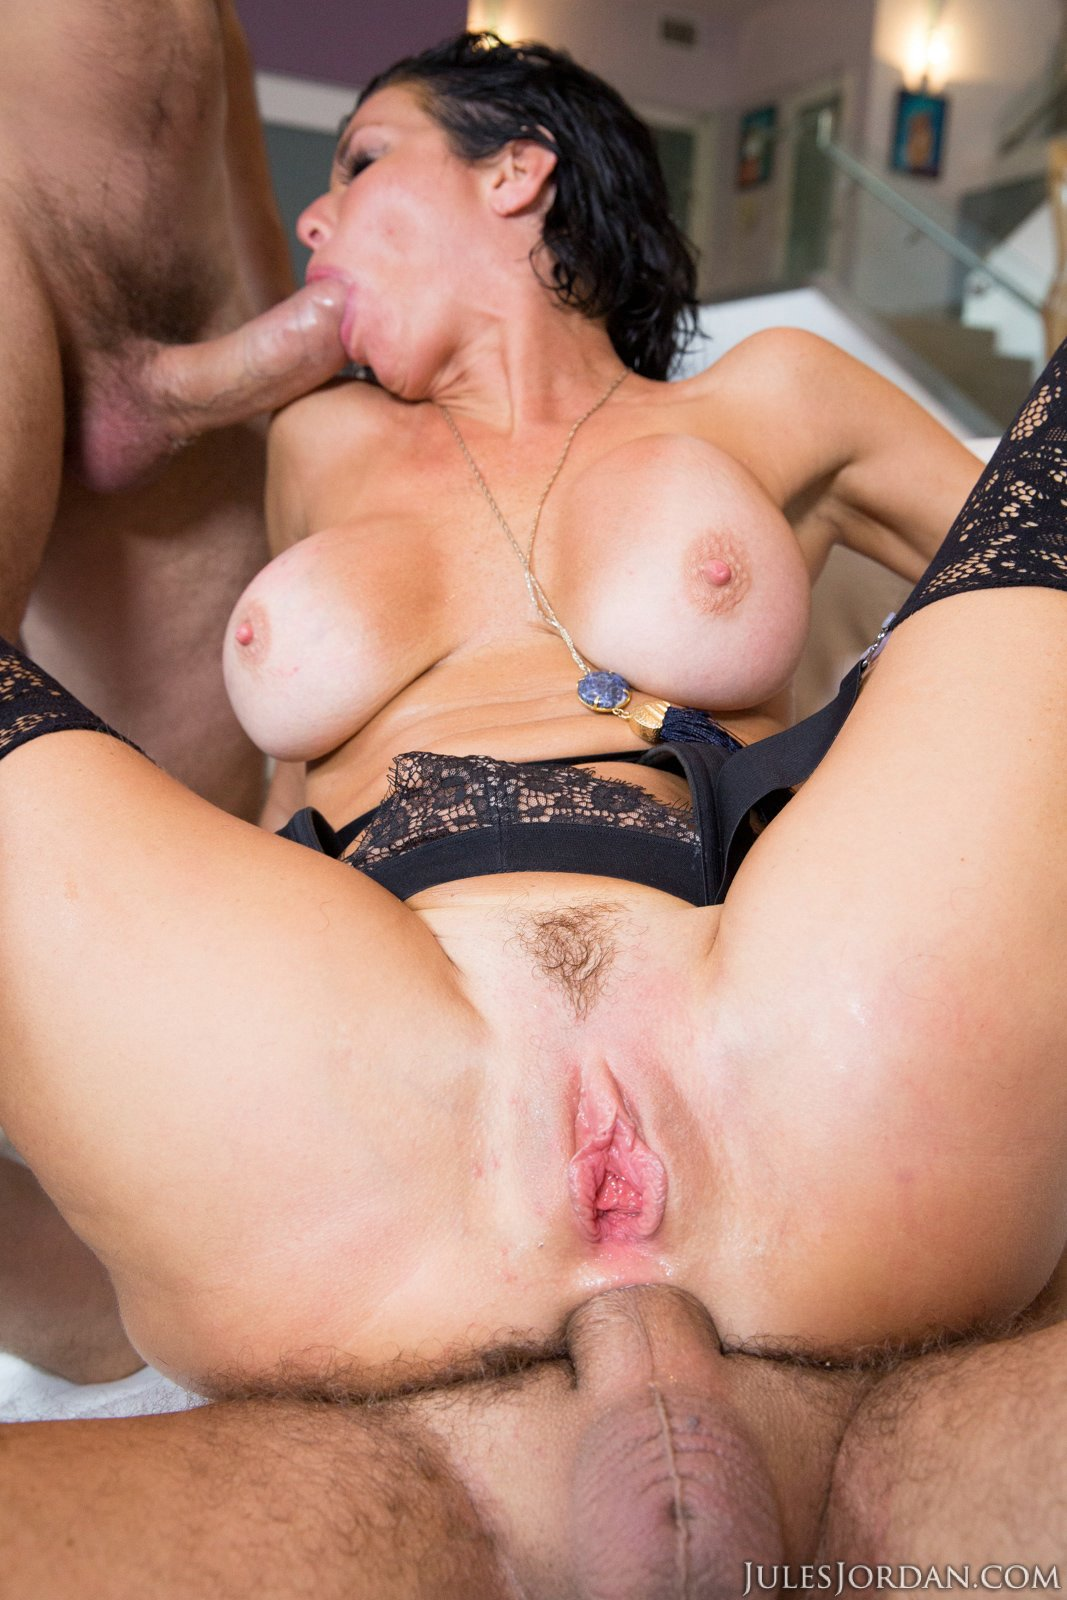 Veronica Avluv gets fucked rough by two guys - My Pornstar ...